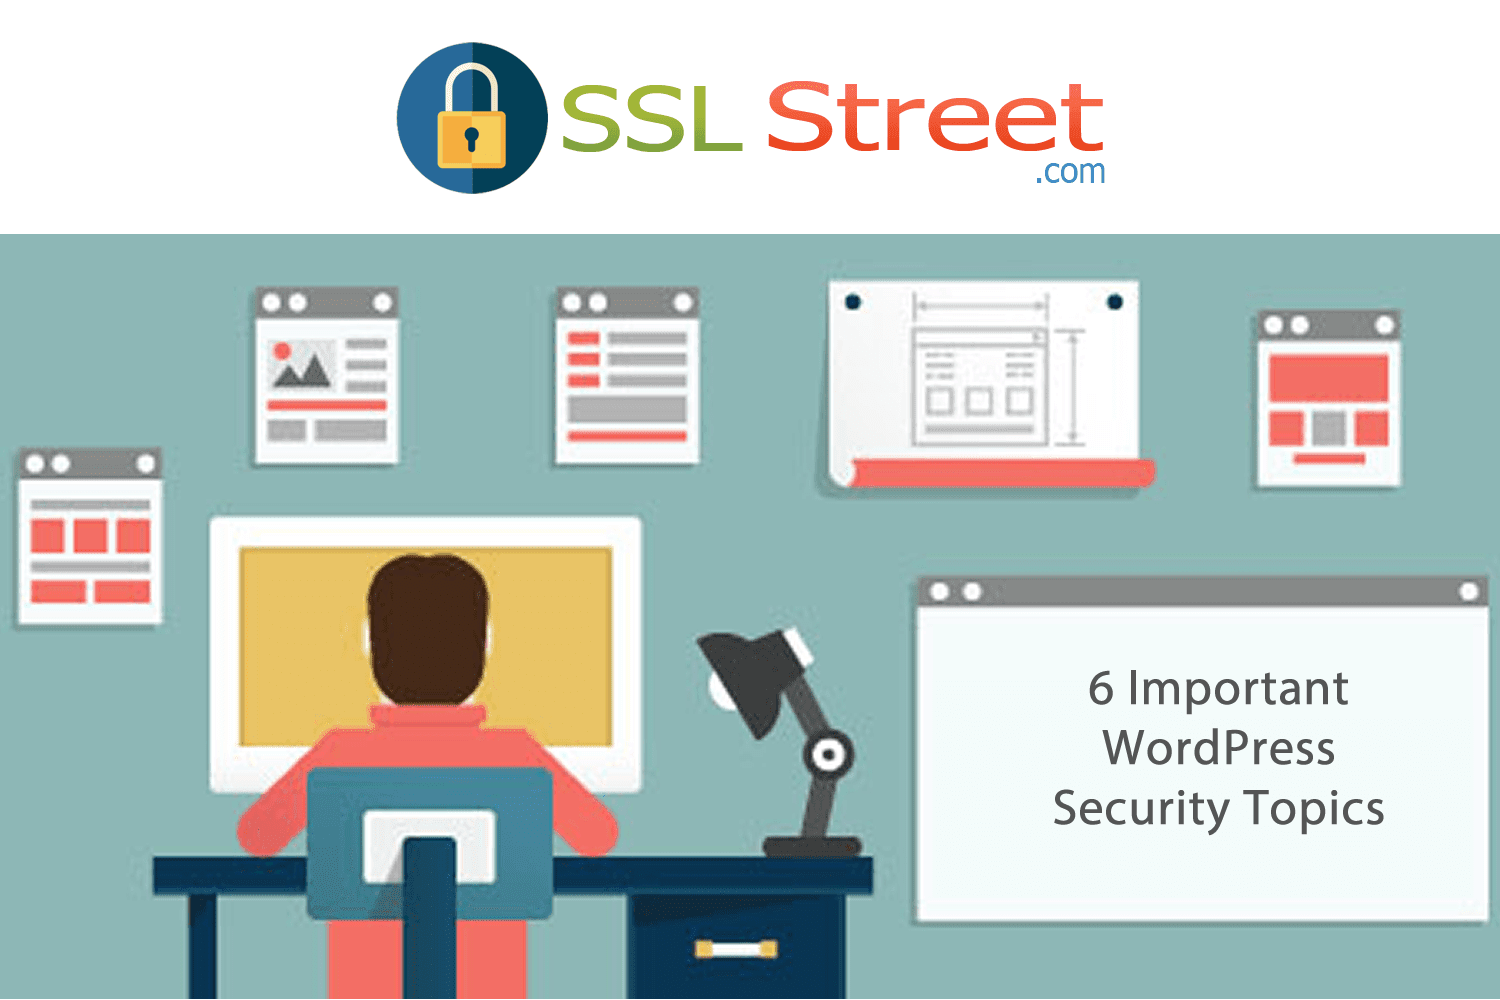 Comodo instant ssl pro most important wordpress security topics wordpress is highly secure software in itself but auditing is needed on regular bases for detecting any kind of loop hole if present xflitez Gallery